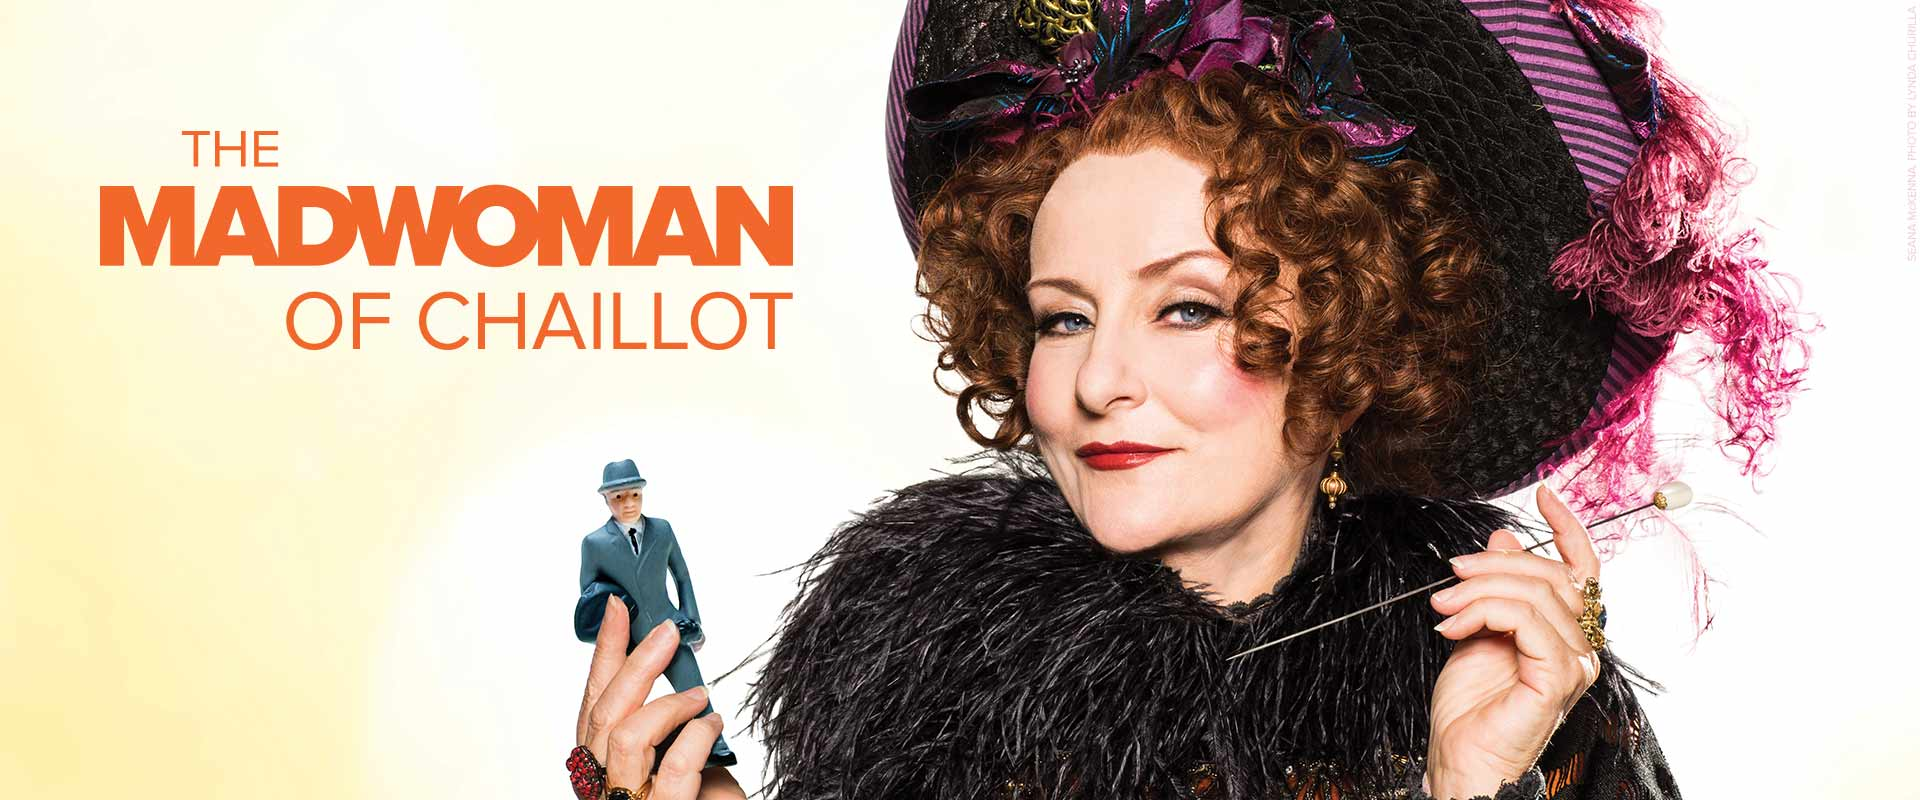 Publicity image from The Madwoman of Chaillot featuring Seana McKenna